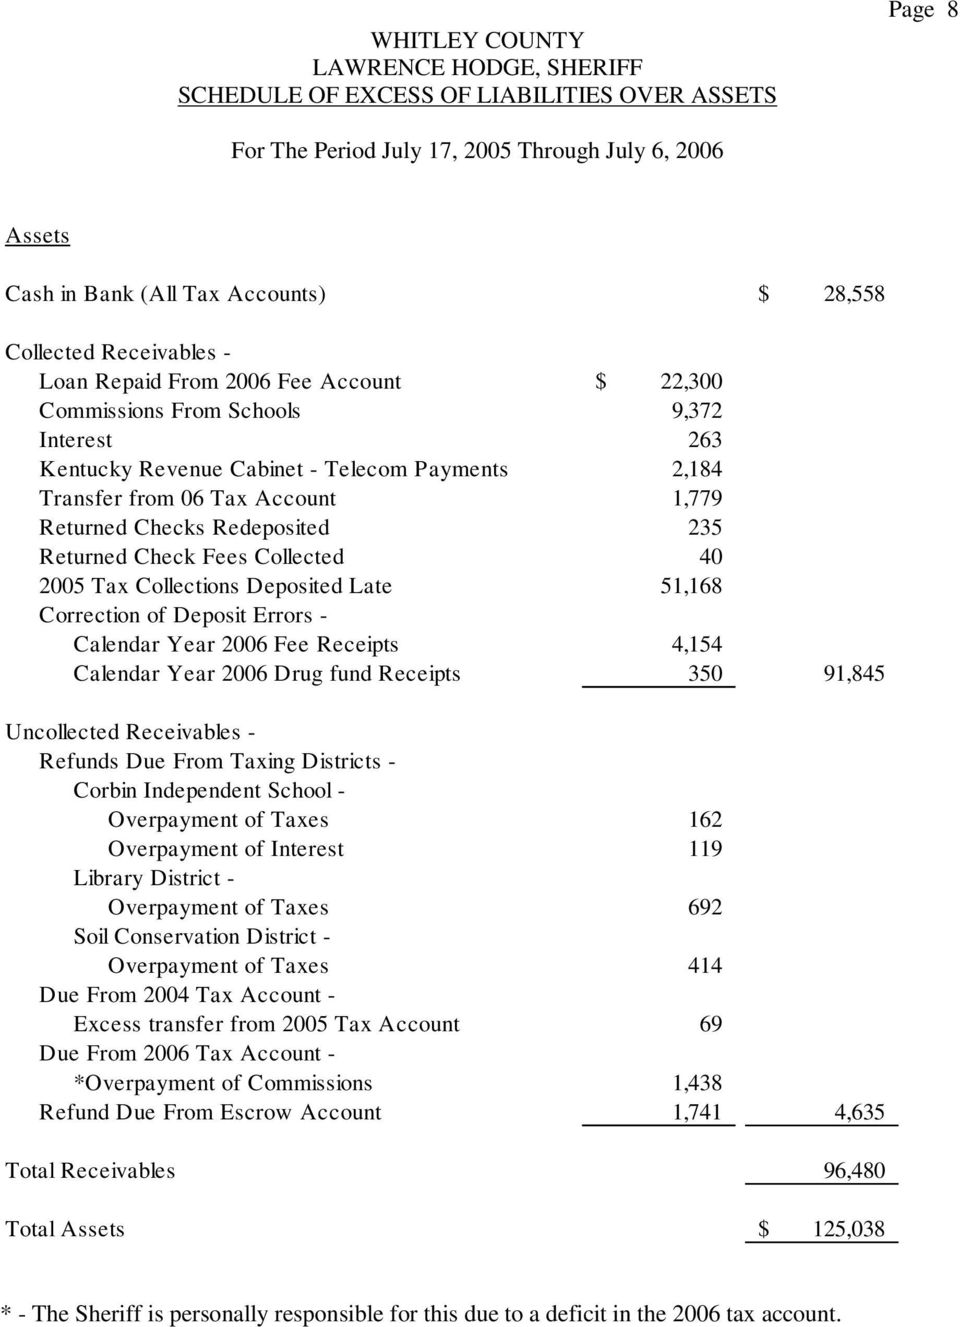 51,168 Correction of Deposit Errors - Calendar Year 2006 Fee Receipts 4,154 Calendar Year 2006 Drug fund Receipts 350 91,845 Uncollected Receivables - Refunds Due From Taxing Districts - Corbin